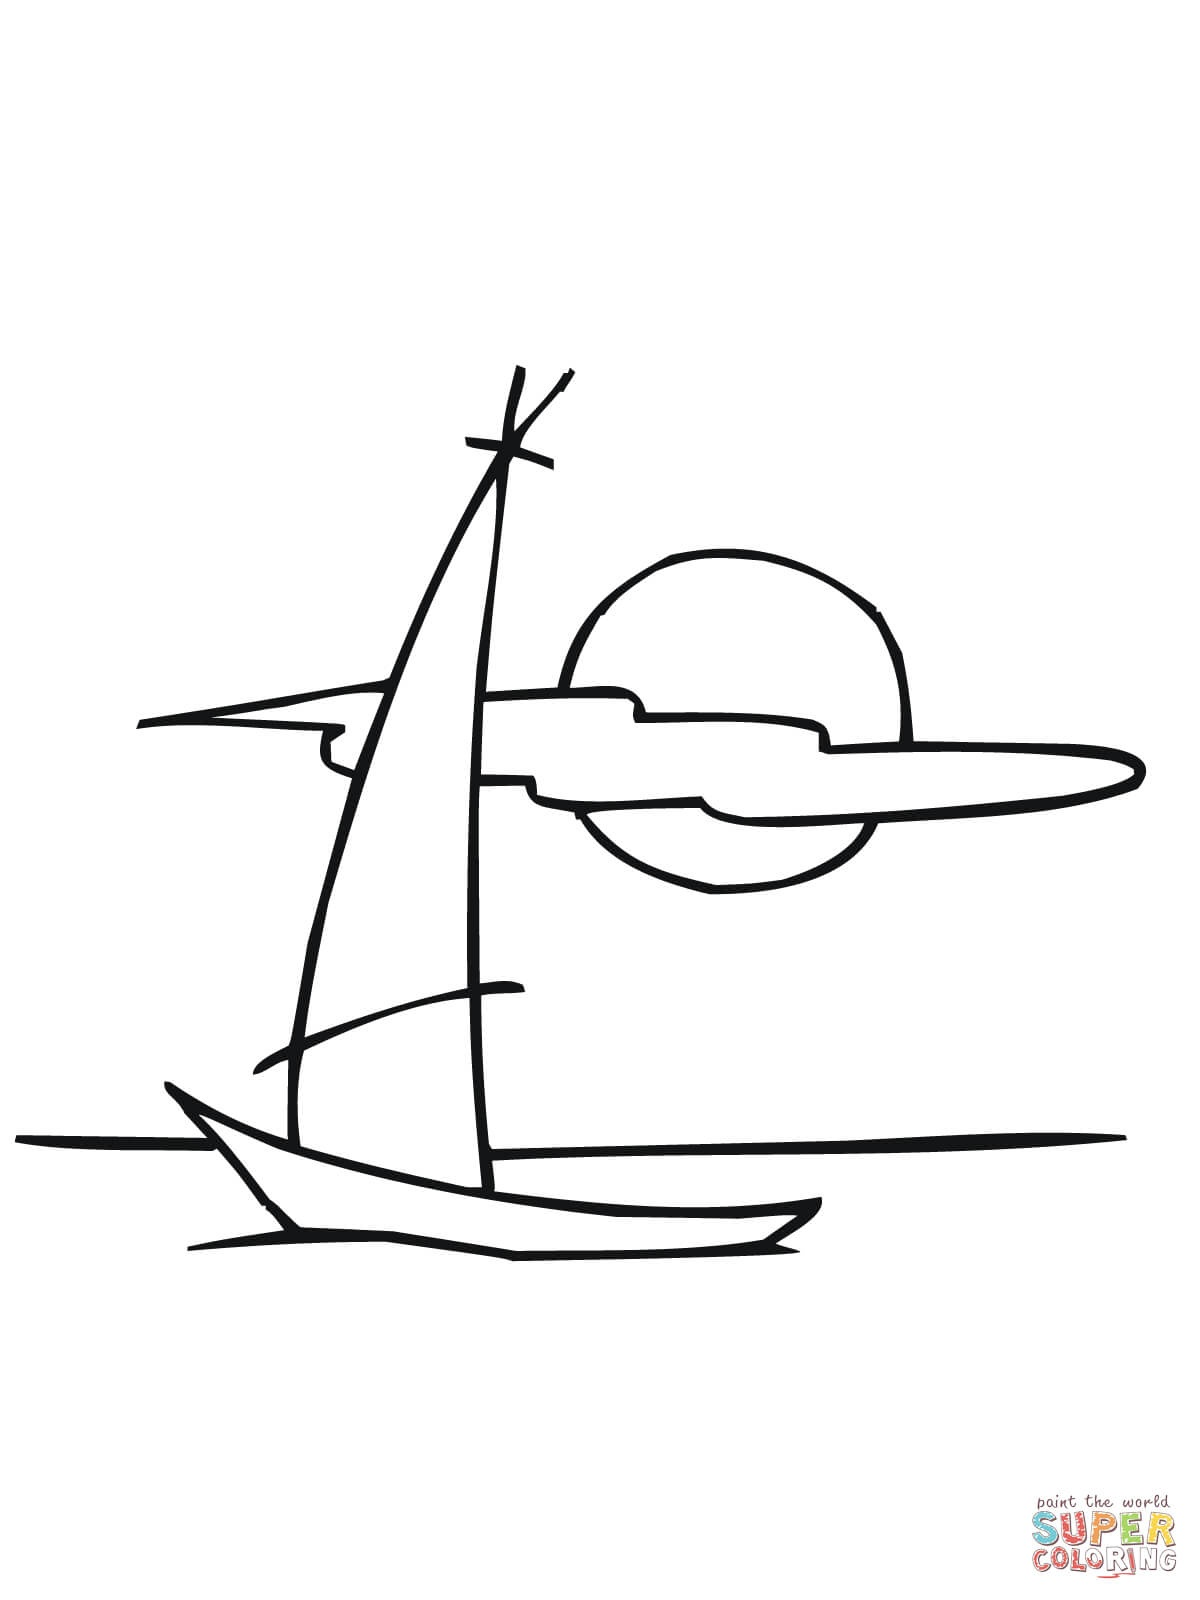 Sailing Dinghy Boat Coloring Page | Free Printable Coloring Pages - Free Printable Sailboat Template